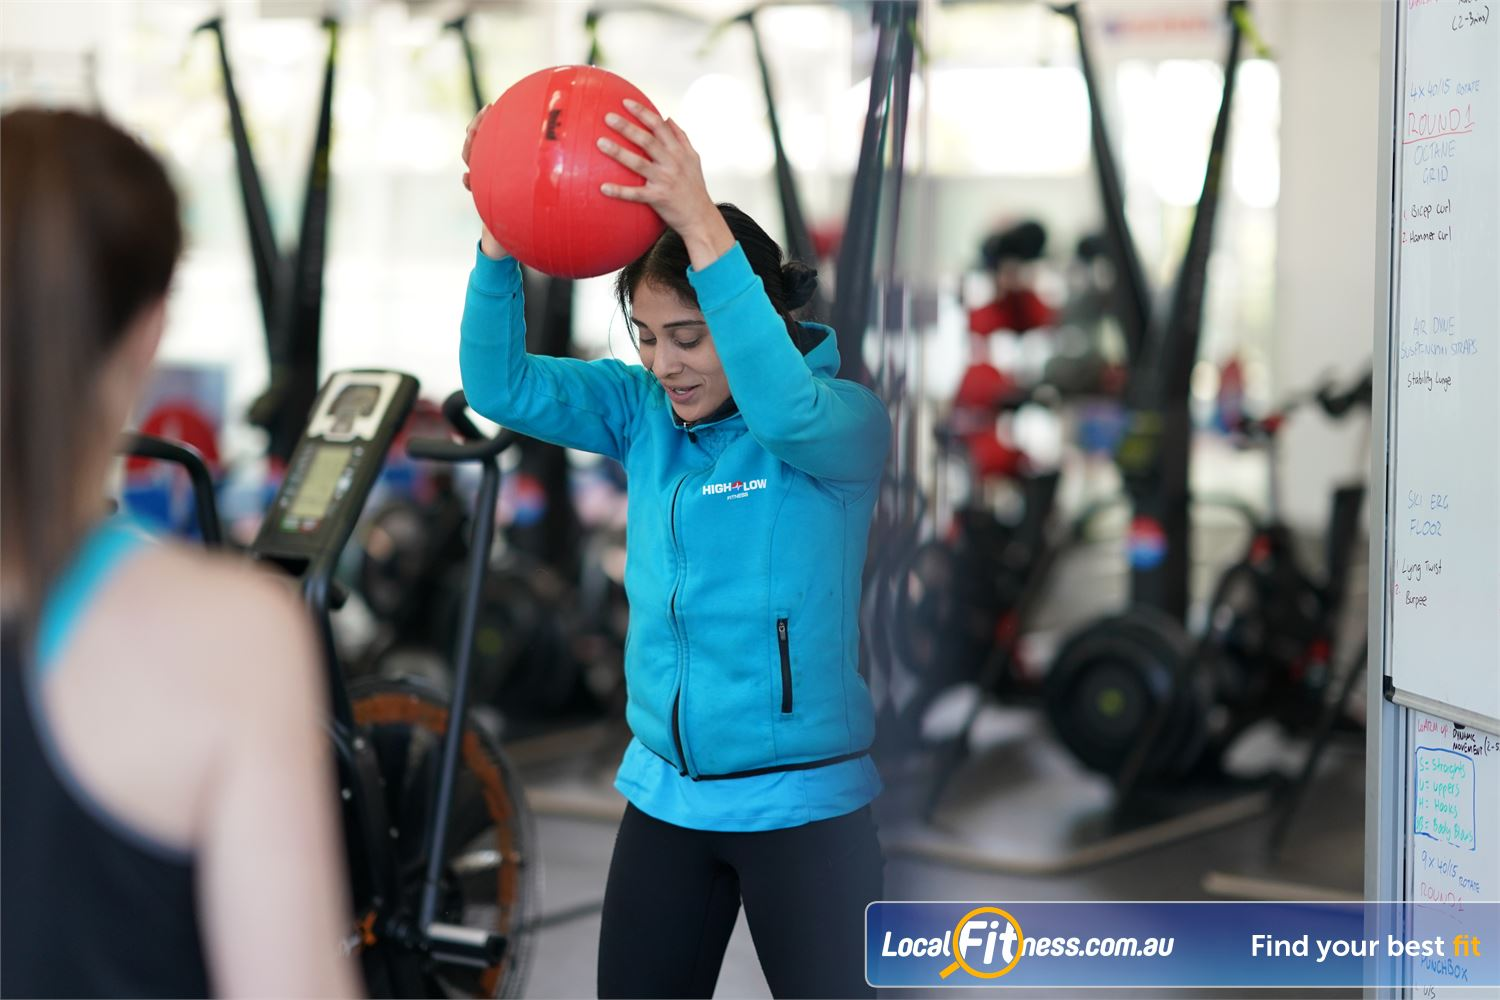 North Ryde Fitness & Aquatic North Ryde Our North Ryde personal trainers will help you get results faster.